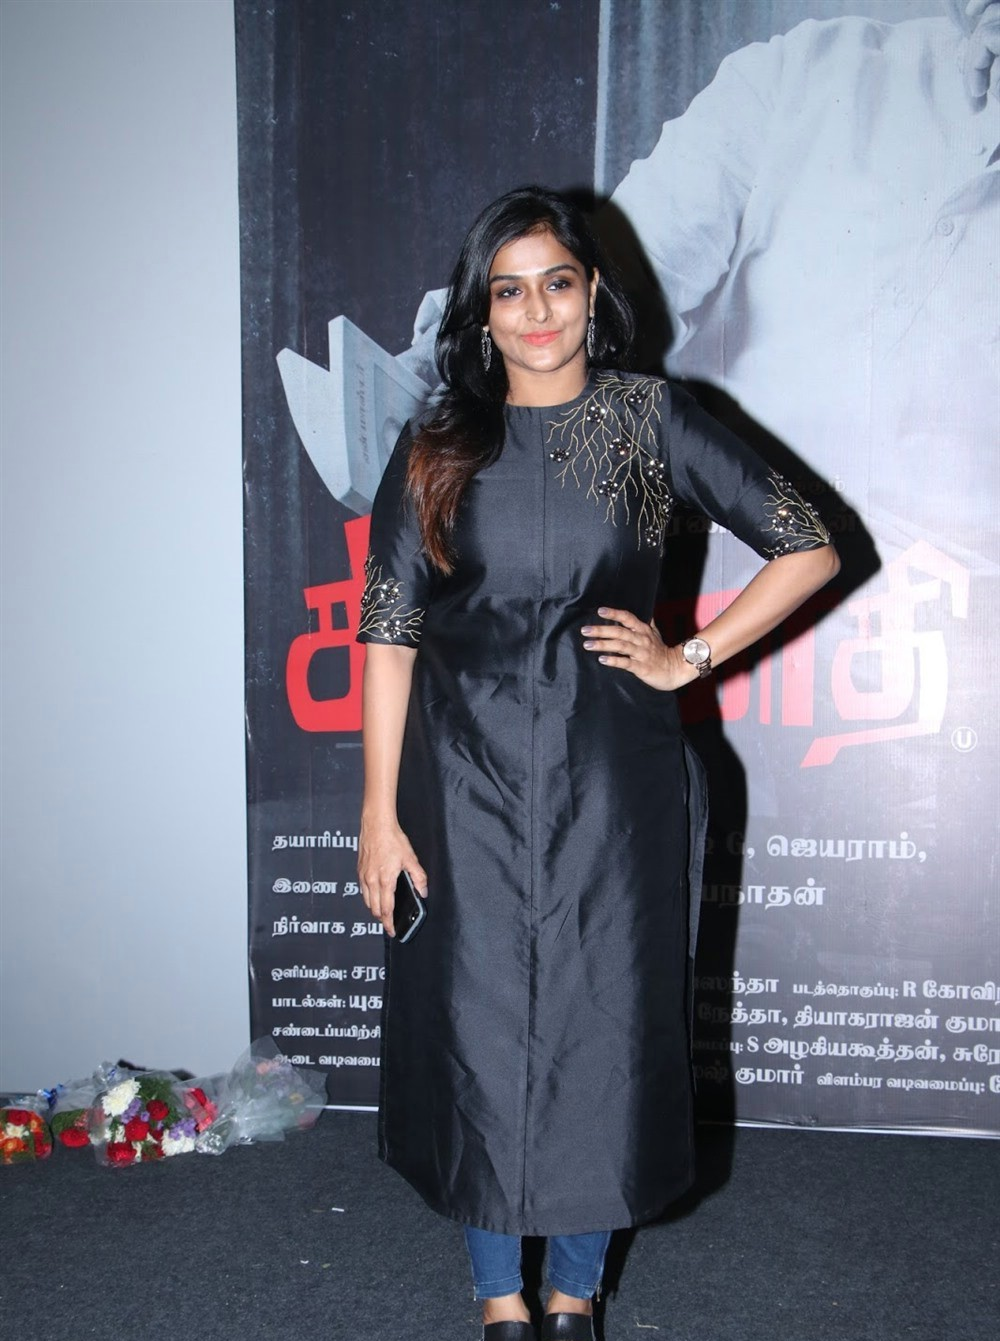 actress-ramya-nambeesan-images-seethakathi-press-meet-5